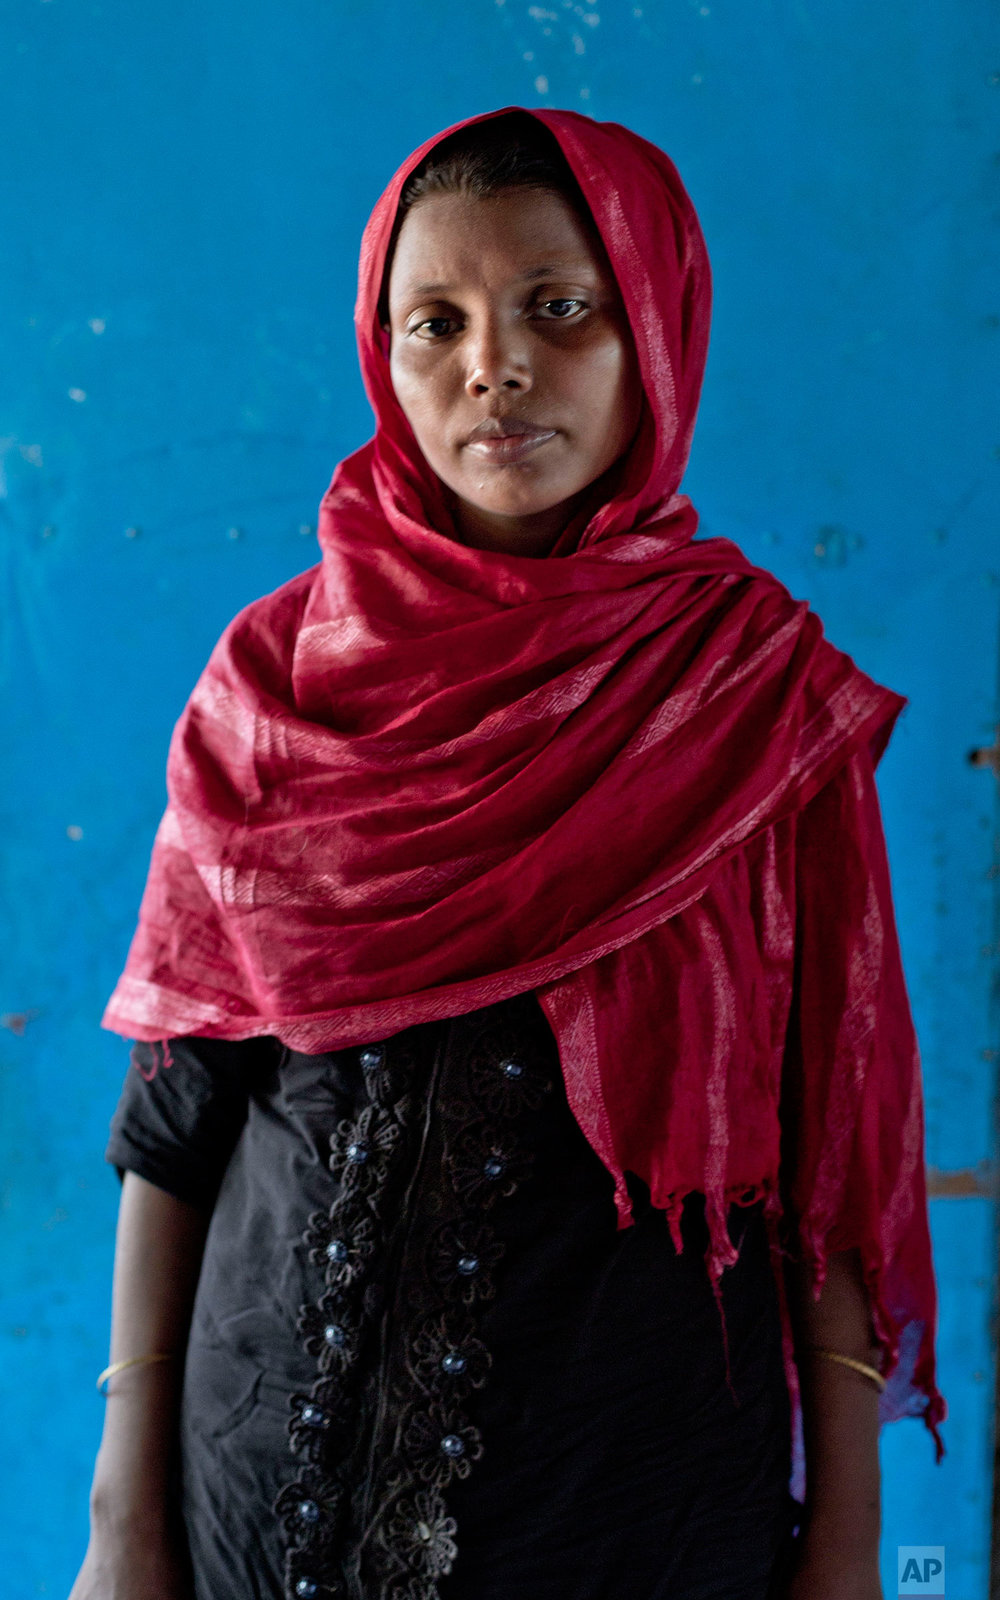 """In this Oct. 1, 2017, photo, Rohingya Muslim woman Malika, from Myanmar's Moidaung village, stands for a photograph at Kutupalong camp for newly arrived Rohingya refugees in Bangladesh. Three of Malika's children, aged six-months to six-years, drowned when the fishing boat they were traveling in, to make their escape from Myanmar, capsized on  Sept. 28. """"That's when I knew something had gone terribly wrong. I knew we had gone too far when people started throwing up,"""" Malika said on smelling saltwater and realizing they were in the ocean when the boat lost its way. (AP Photo/Gemunu Amarasinghe)"""